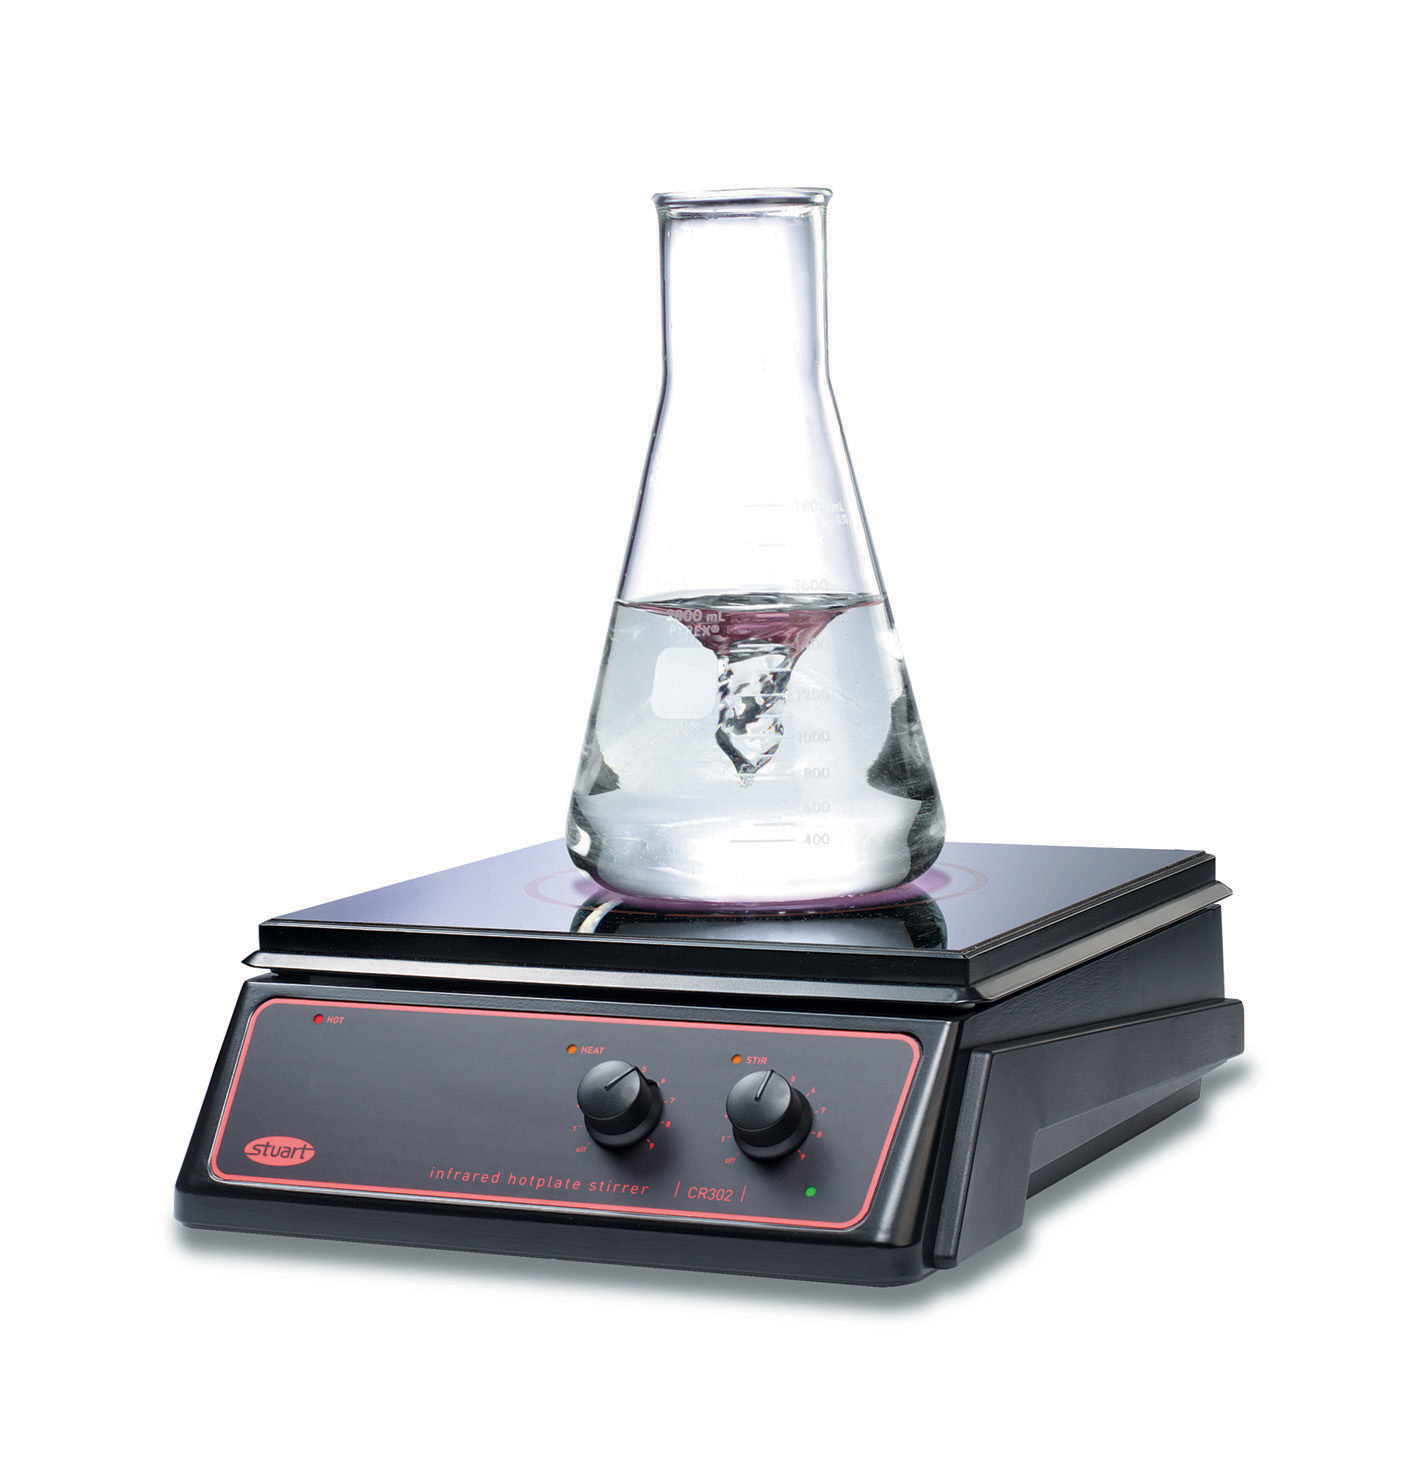 Bibby Scientific Cr302 Magnetic Stirrer